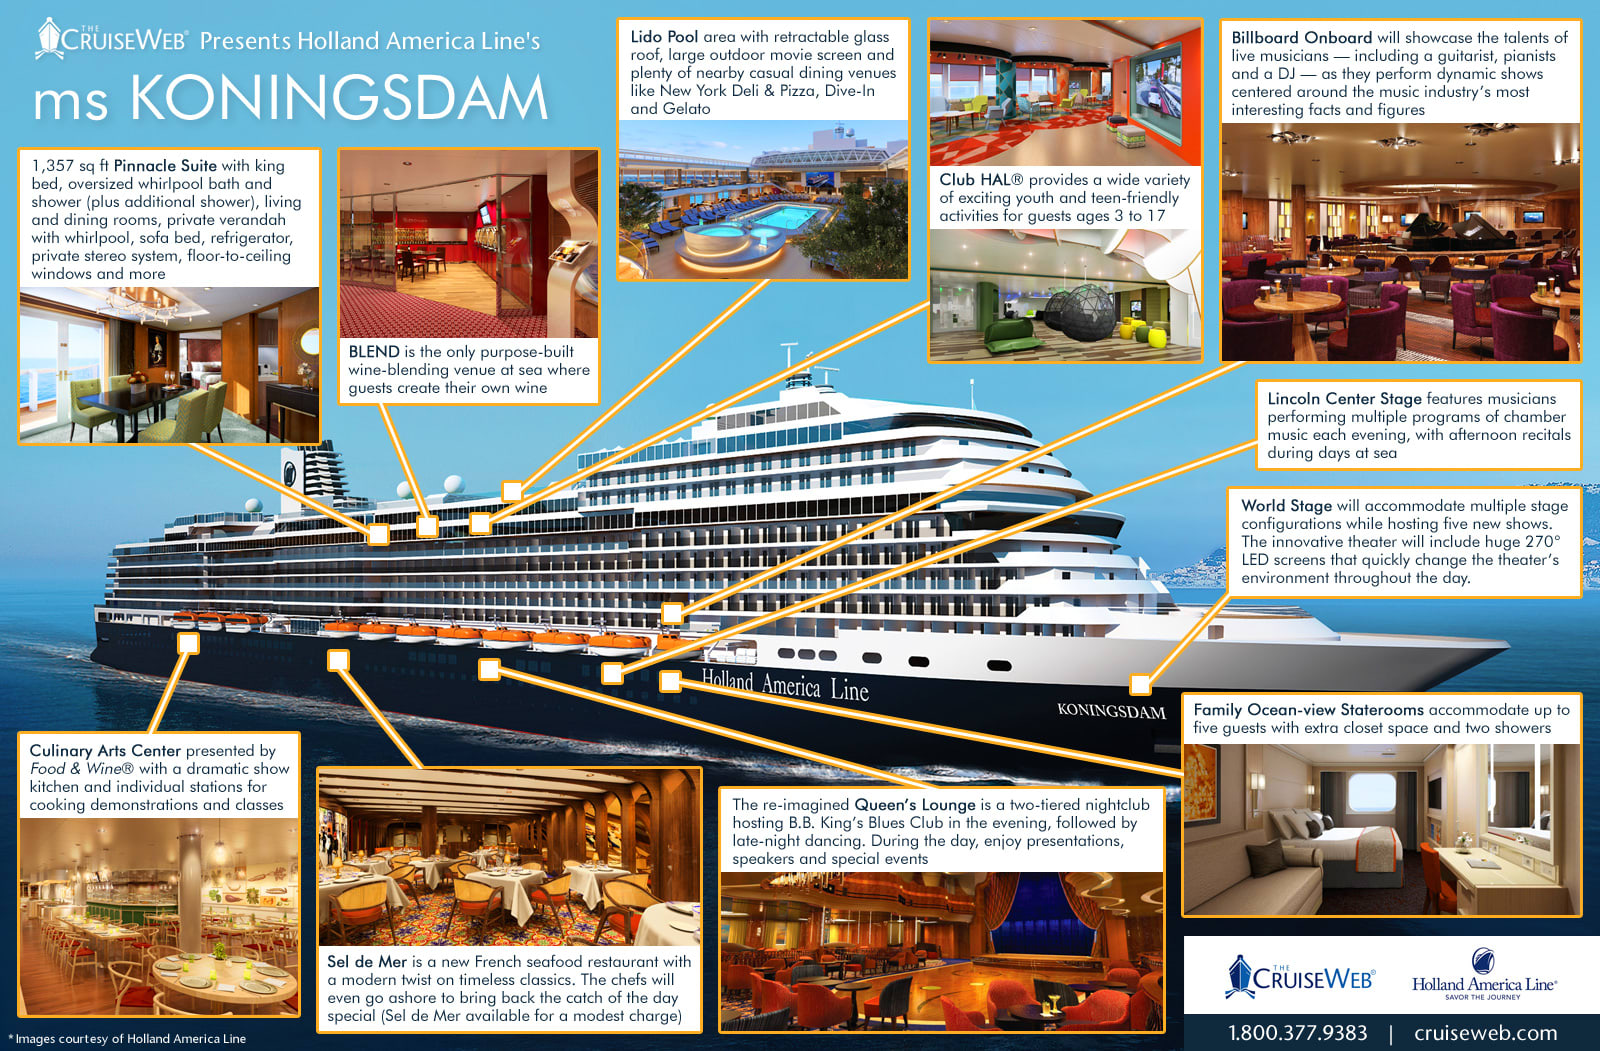 Holland America ms Koningsdam: An Infographic